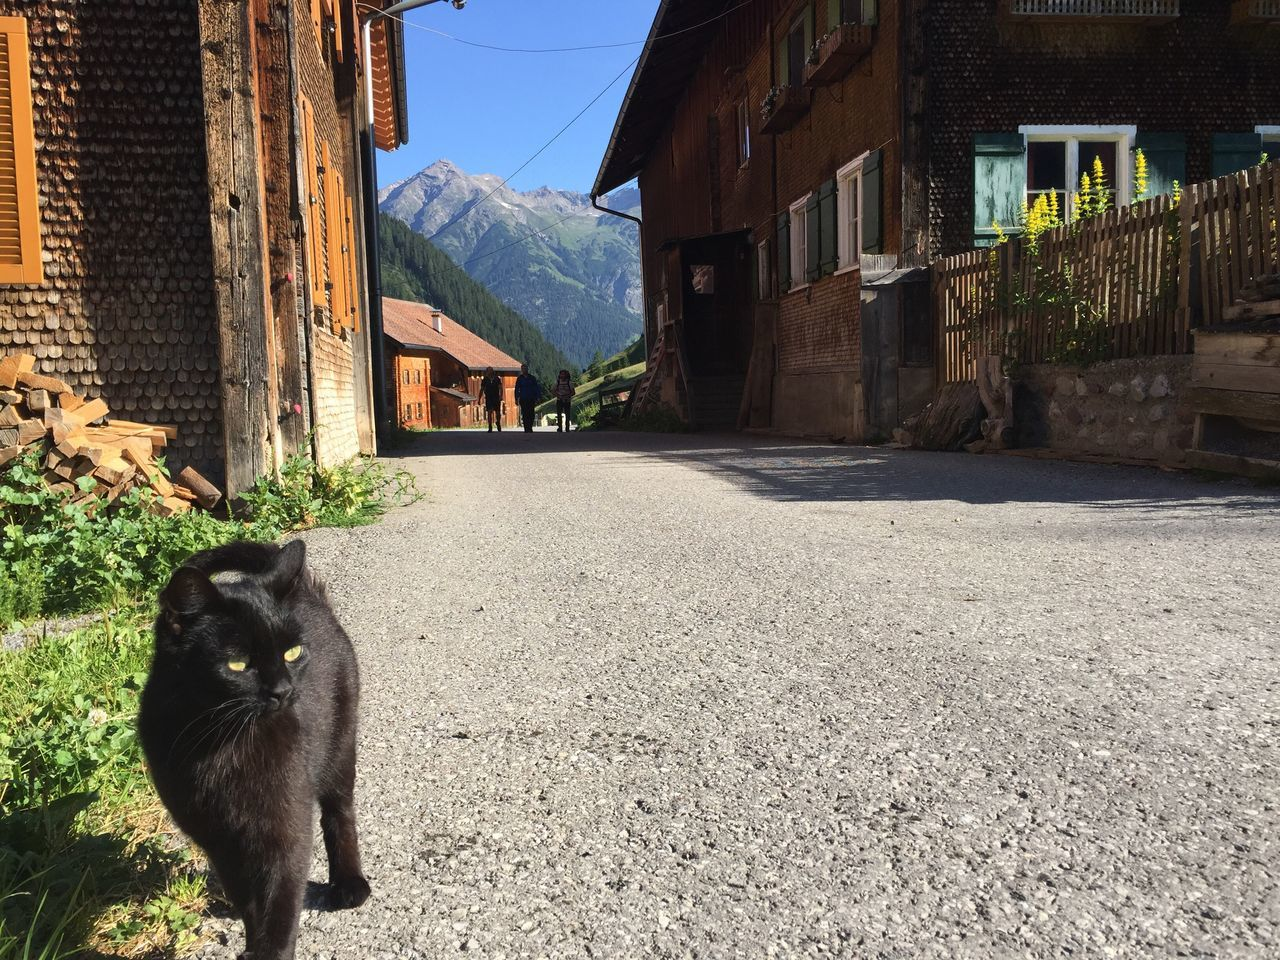 Cat is Followme - Starting A Trip Austria Alps Alpen Black Cat